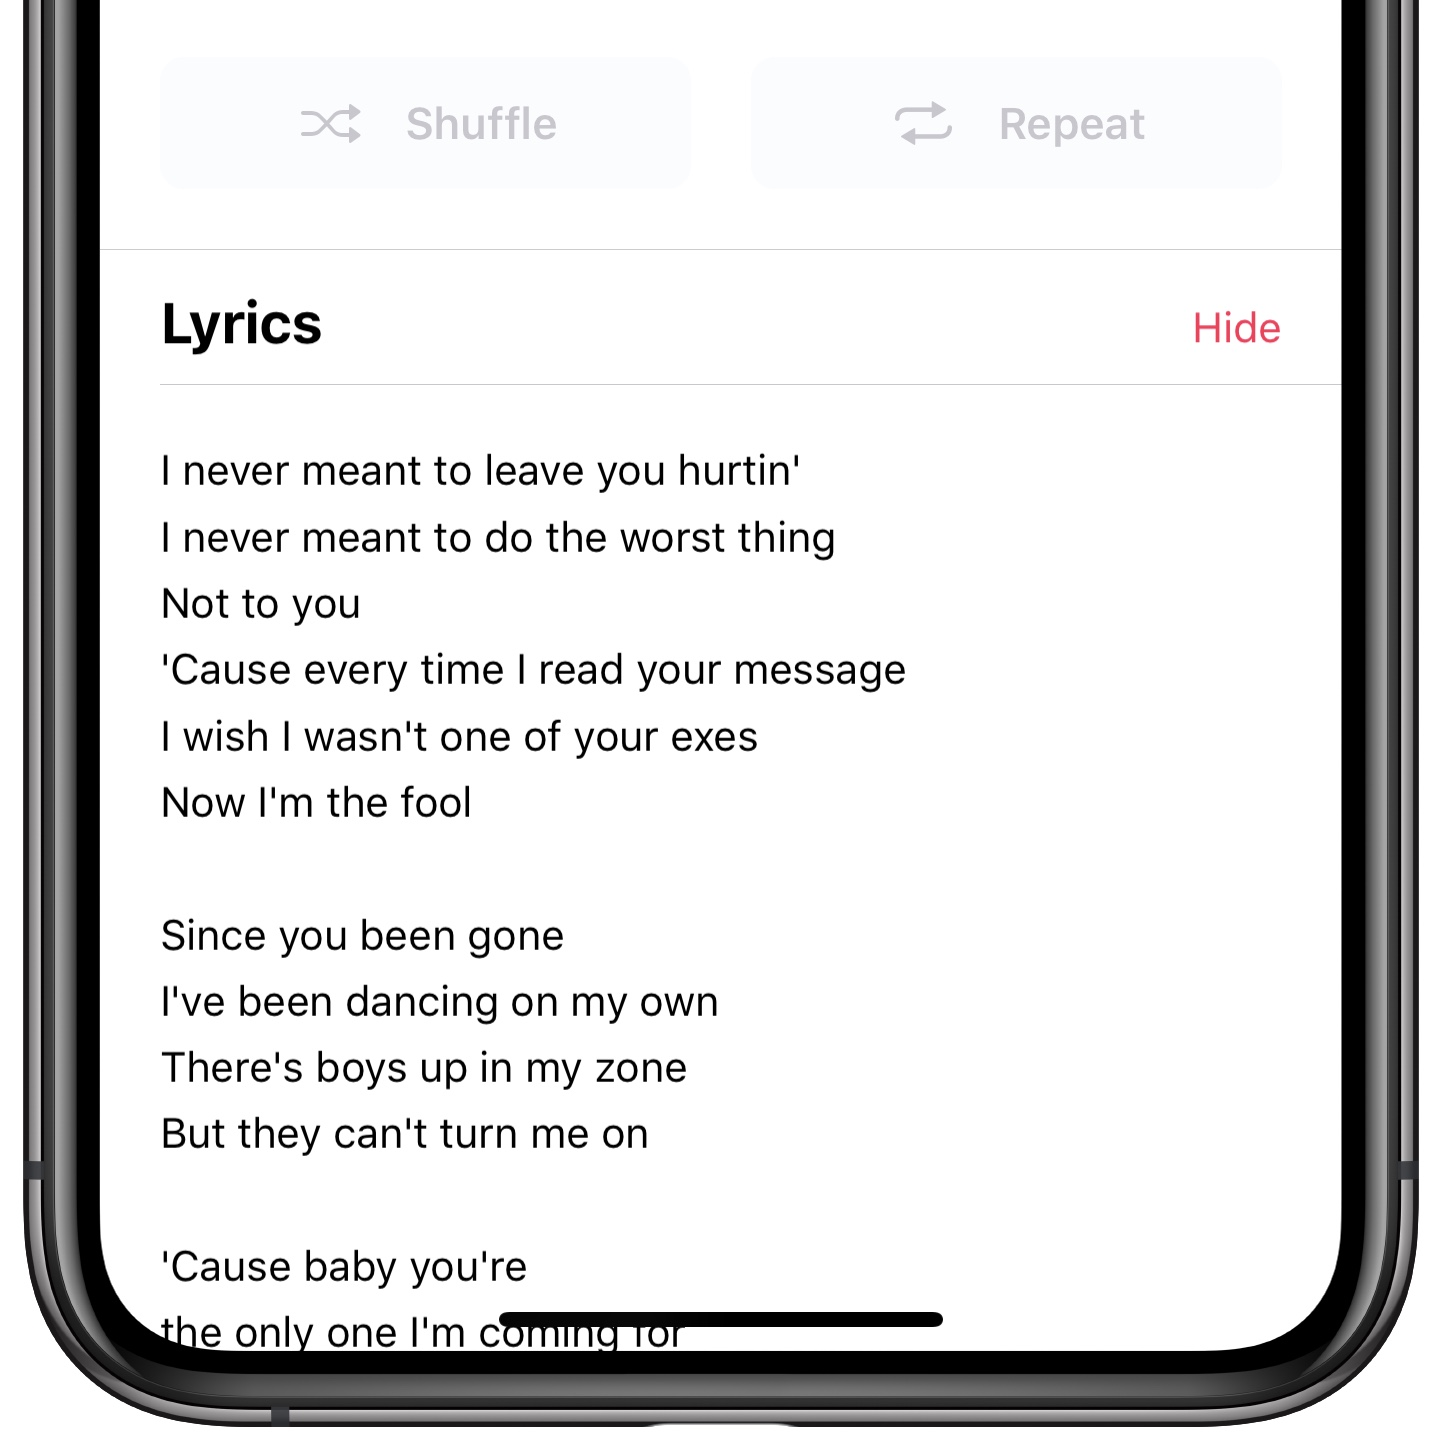 How To View Lyrics In Apple Music On IPhone And IPad